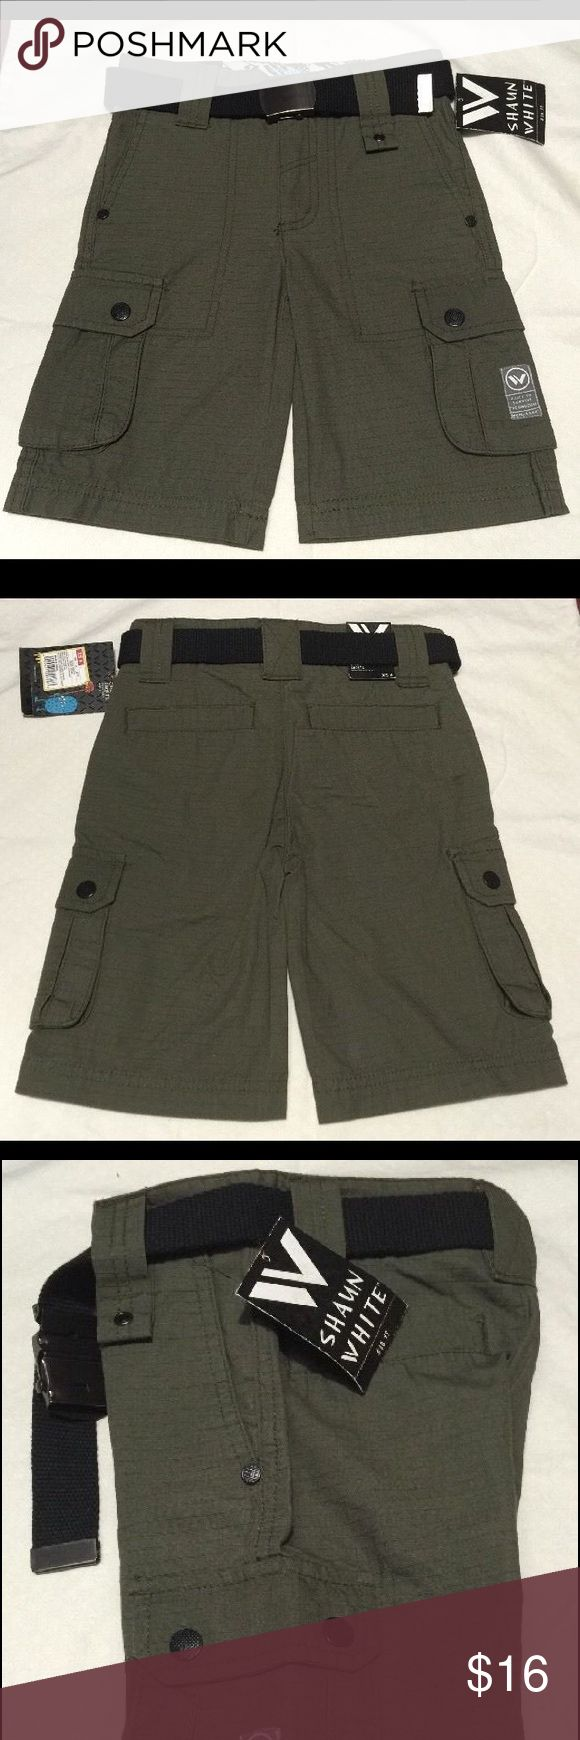 Shaun White Boys Cargo Shorts Olive Green w/ Belt Shaun White Boy's Cargo Shorts  I love Shaun White boys' clothing!  It features many aesthetic designs very appealing to boys.   New with tags Sizes available: 5 Color: Olive Green Included belt: Black fabric 100% Cotton Canvas  Two front pork chop pockets, two cargo pockets, two rear pockets Bronze metal details Features horizontal and vertical line design Extended belt loop Zipper fly Adjustable waistband Wear with or without belt  These…